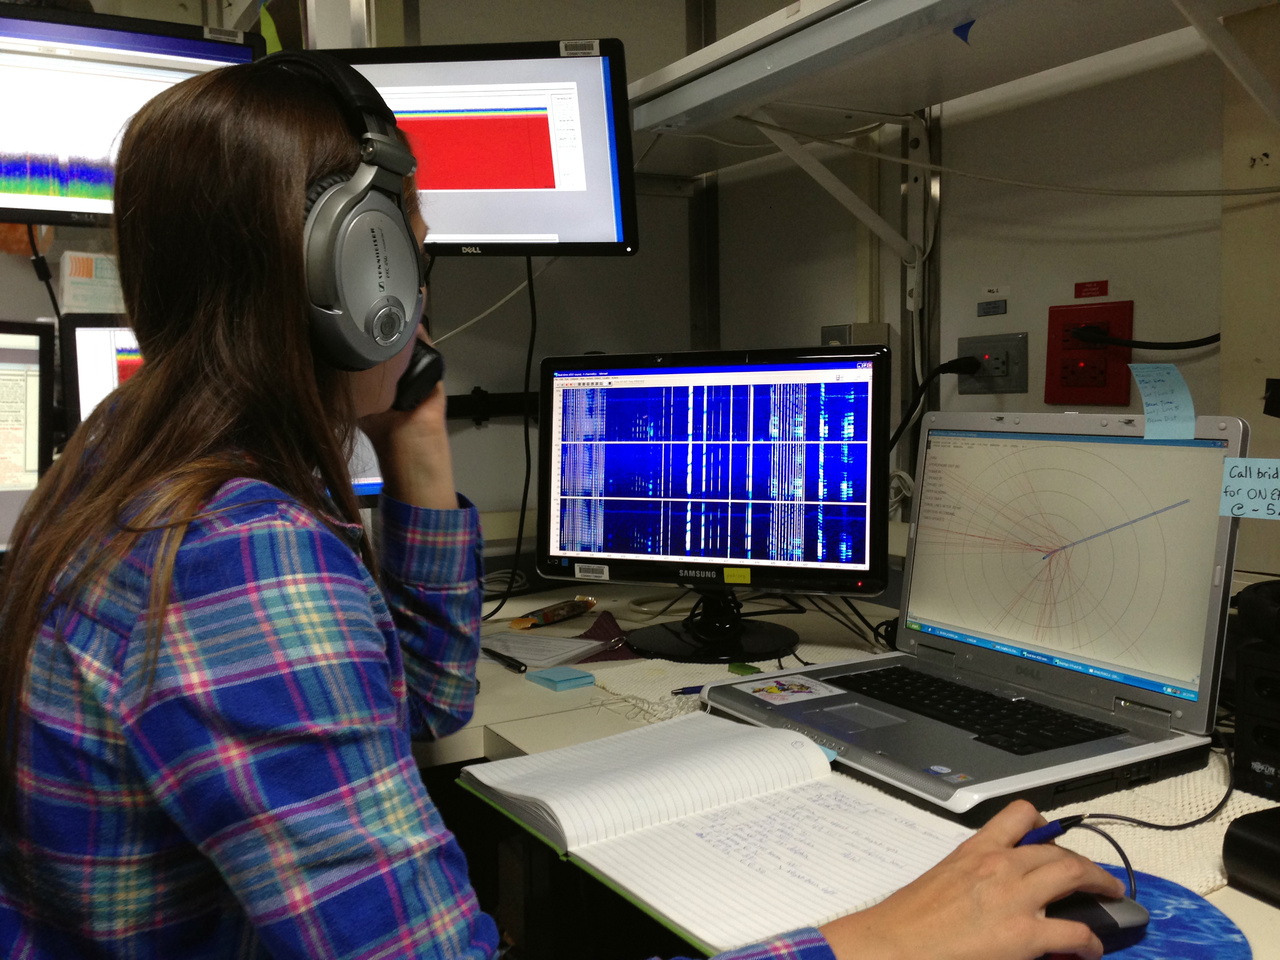 Detecting_cetaceans_with_a_real-time_acoustic_array_Kym.Yano_.jpeg